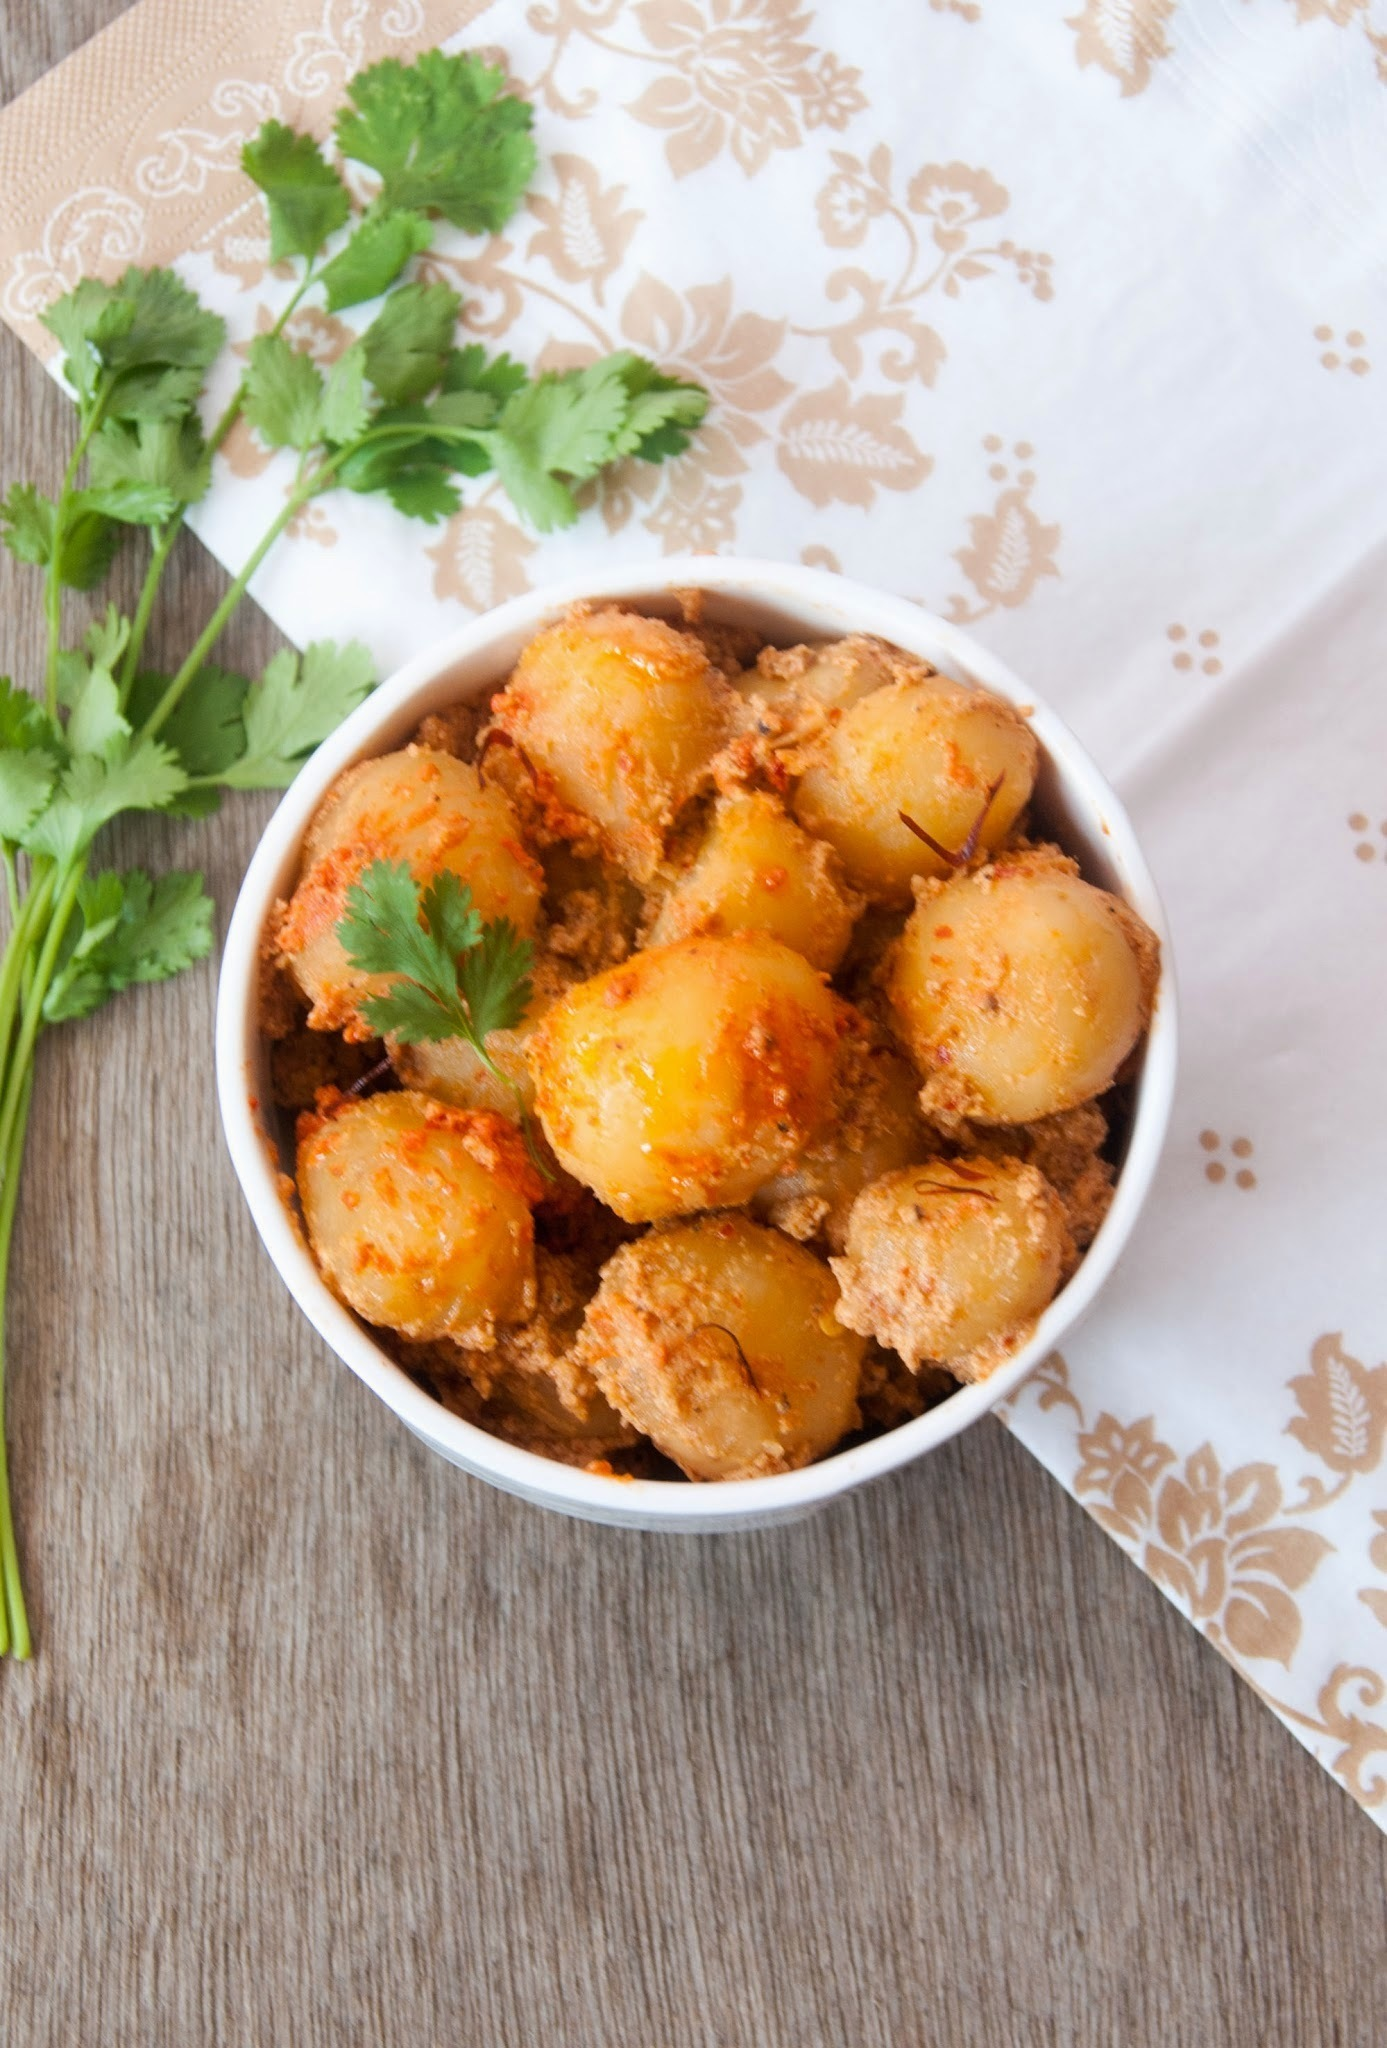 Dum Aloo / Baby Potatoes in Yogurt based Gravy